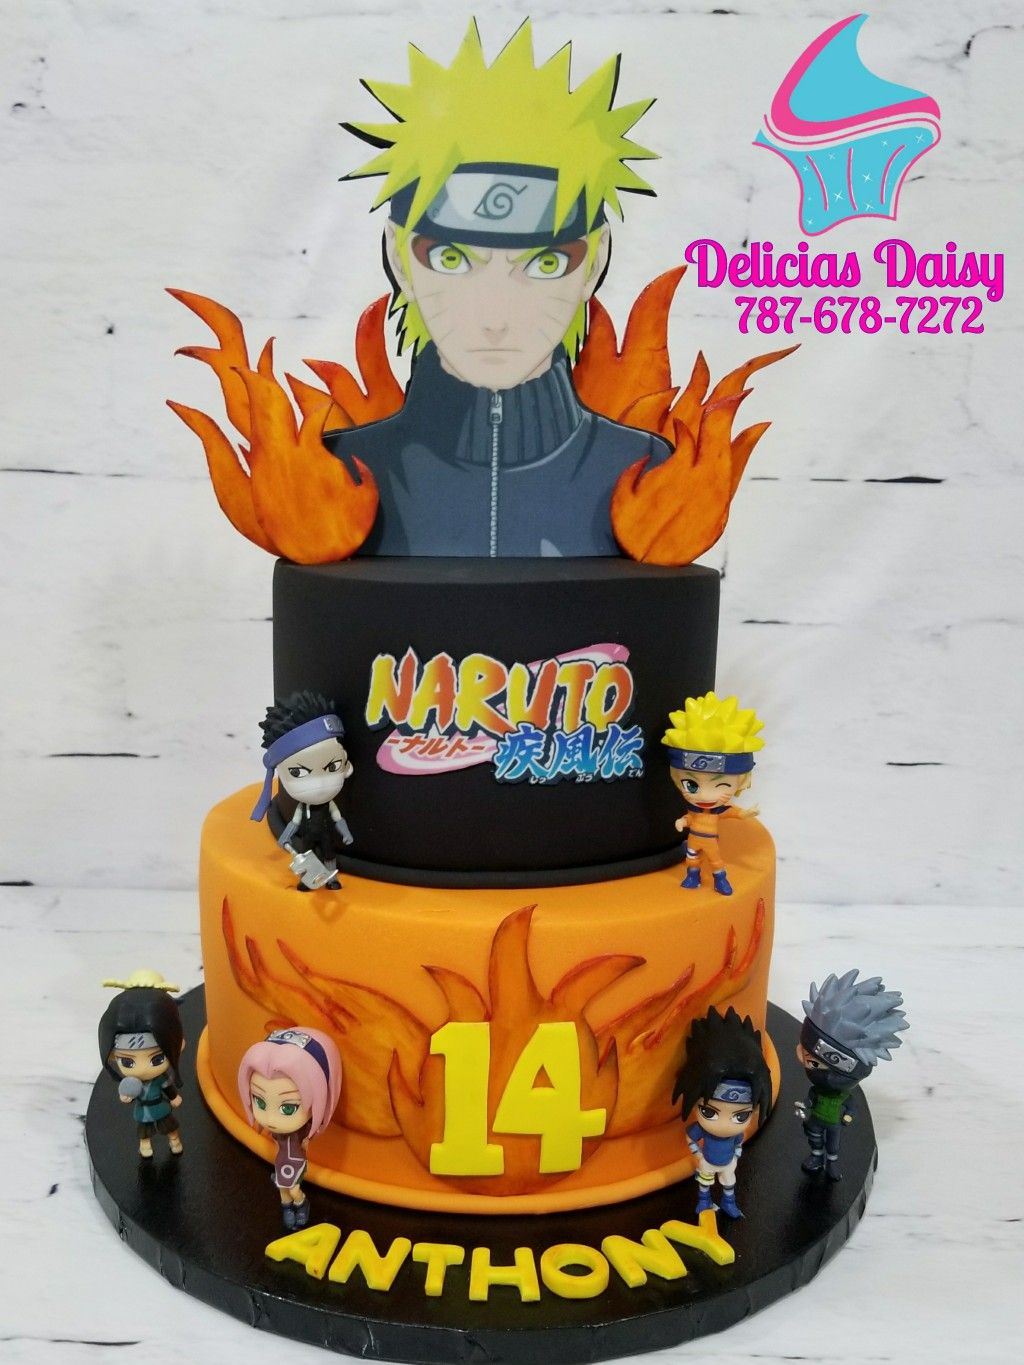 Fabulous Naruto Cake With Images Naruto Birthday Anime Cake Naruto Funny Birthday Cards Online Inifodamsfinfo